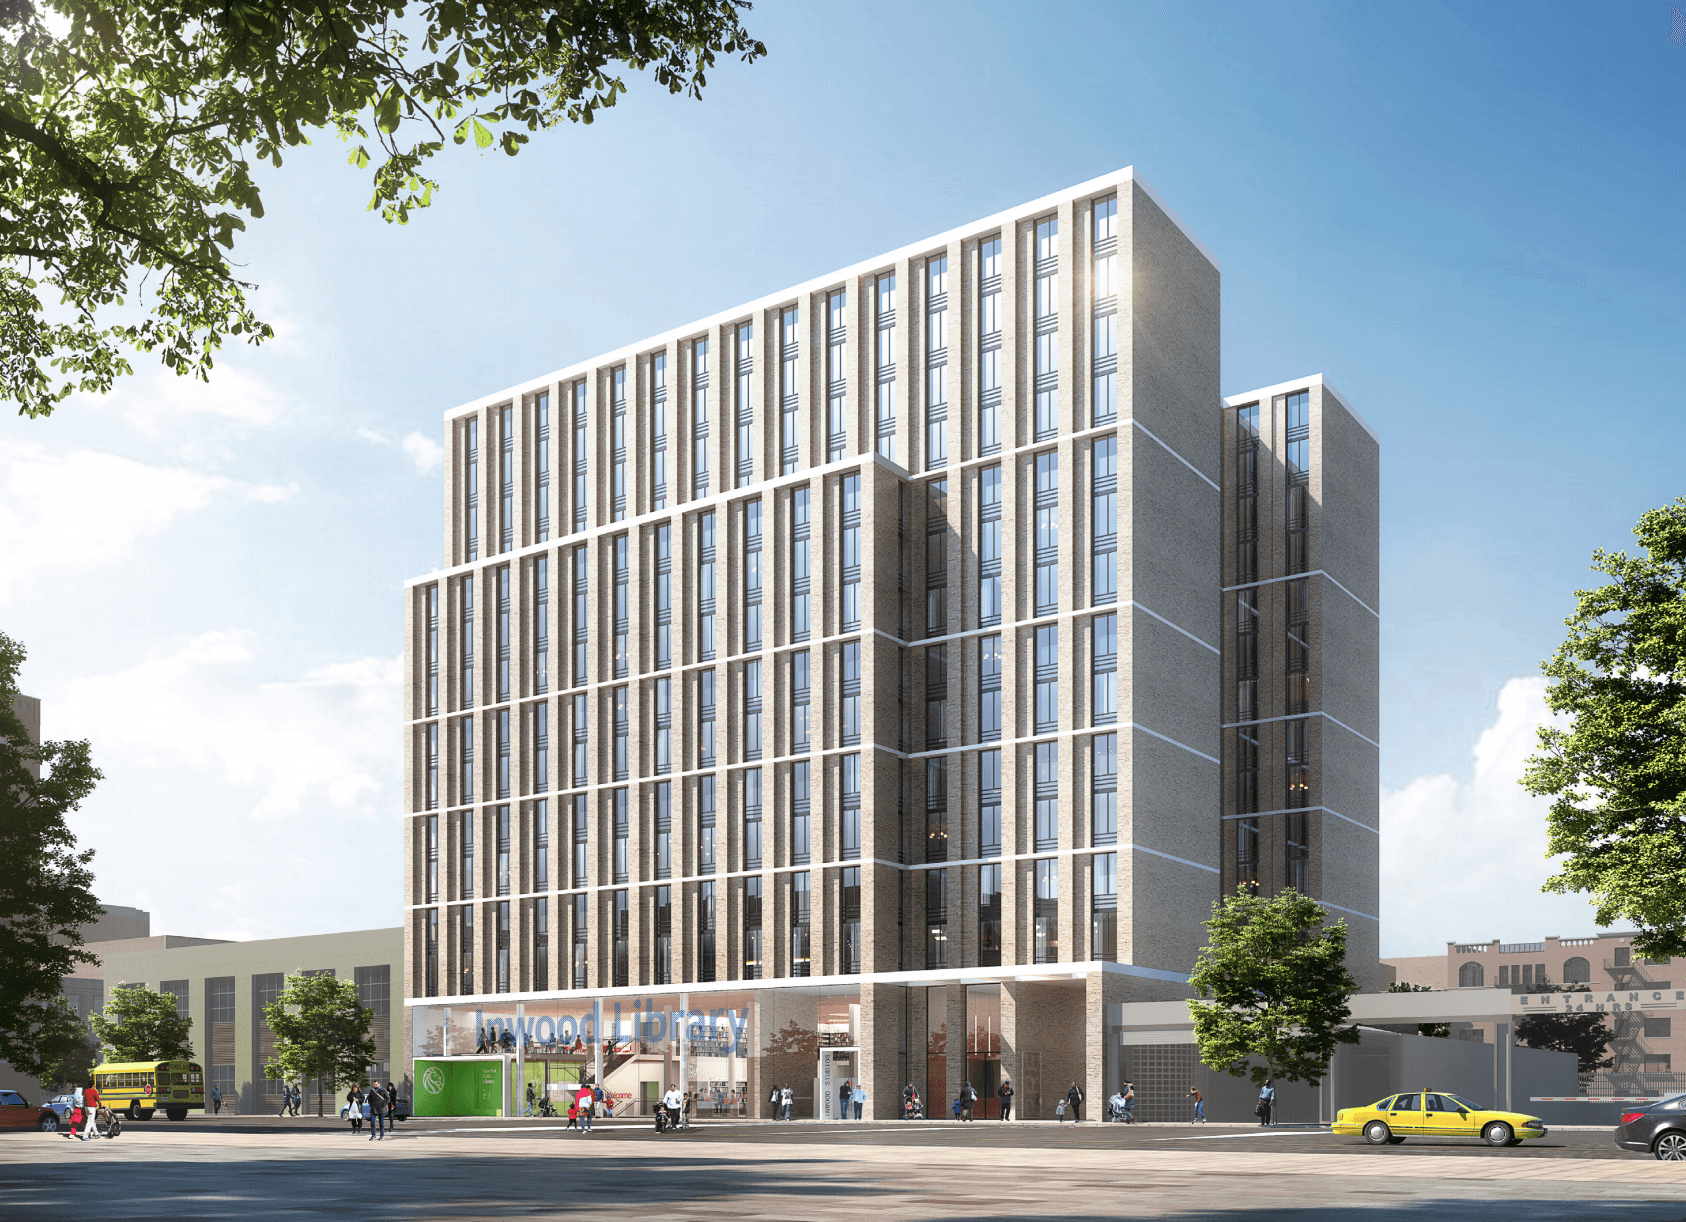 inwood library project will have 175 affordable apartments and a new